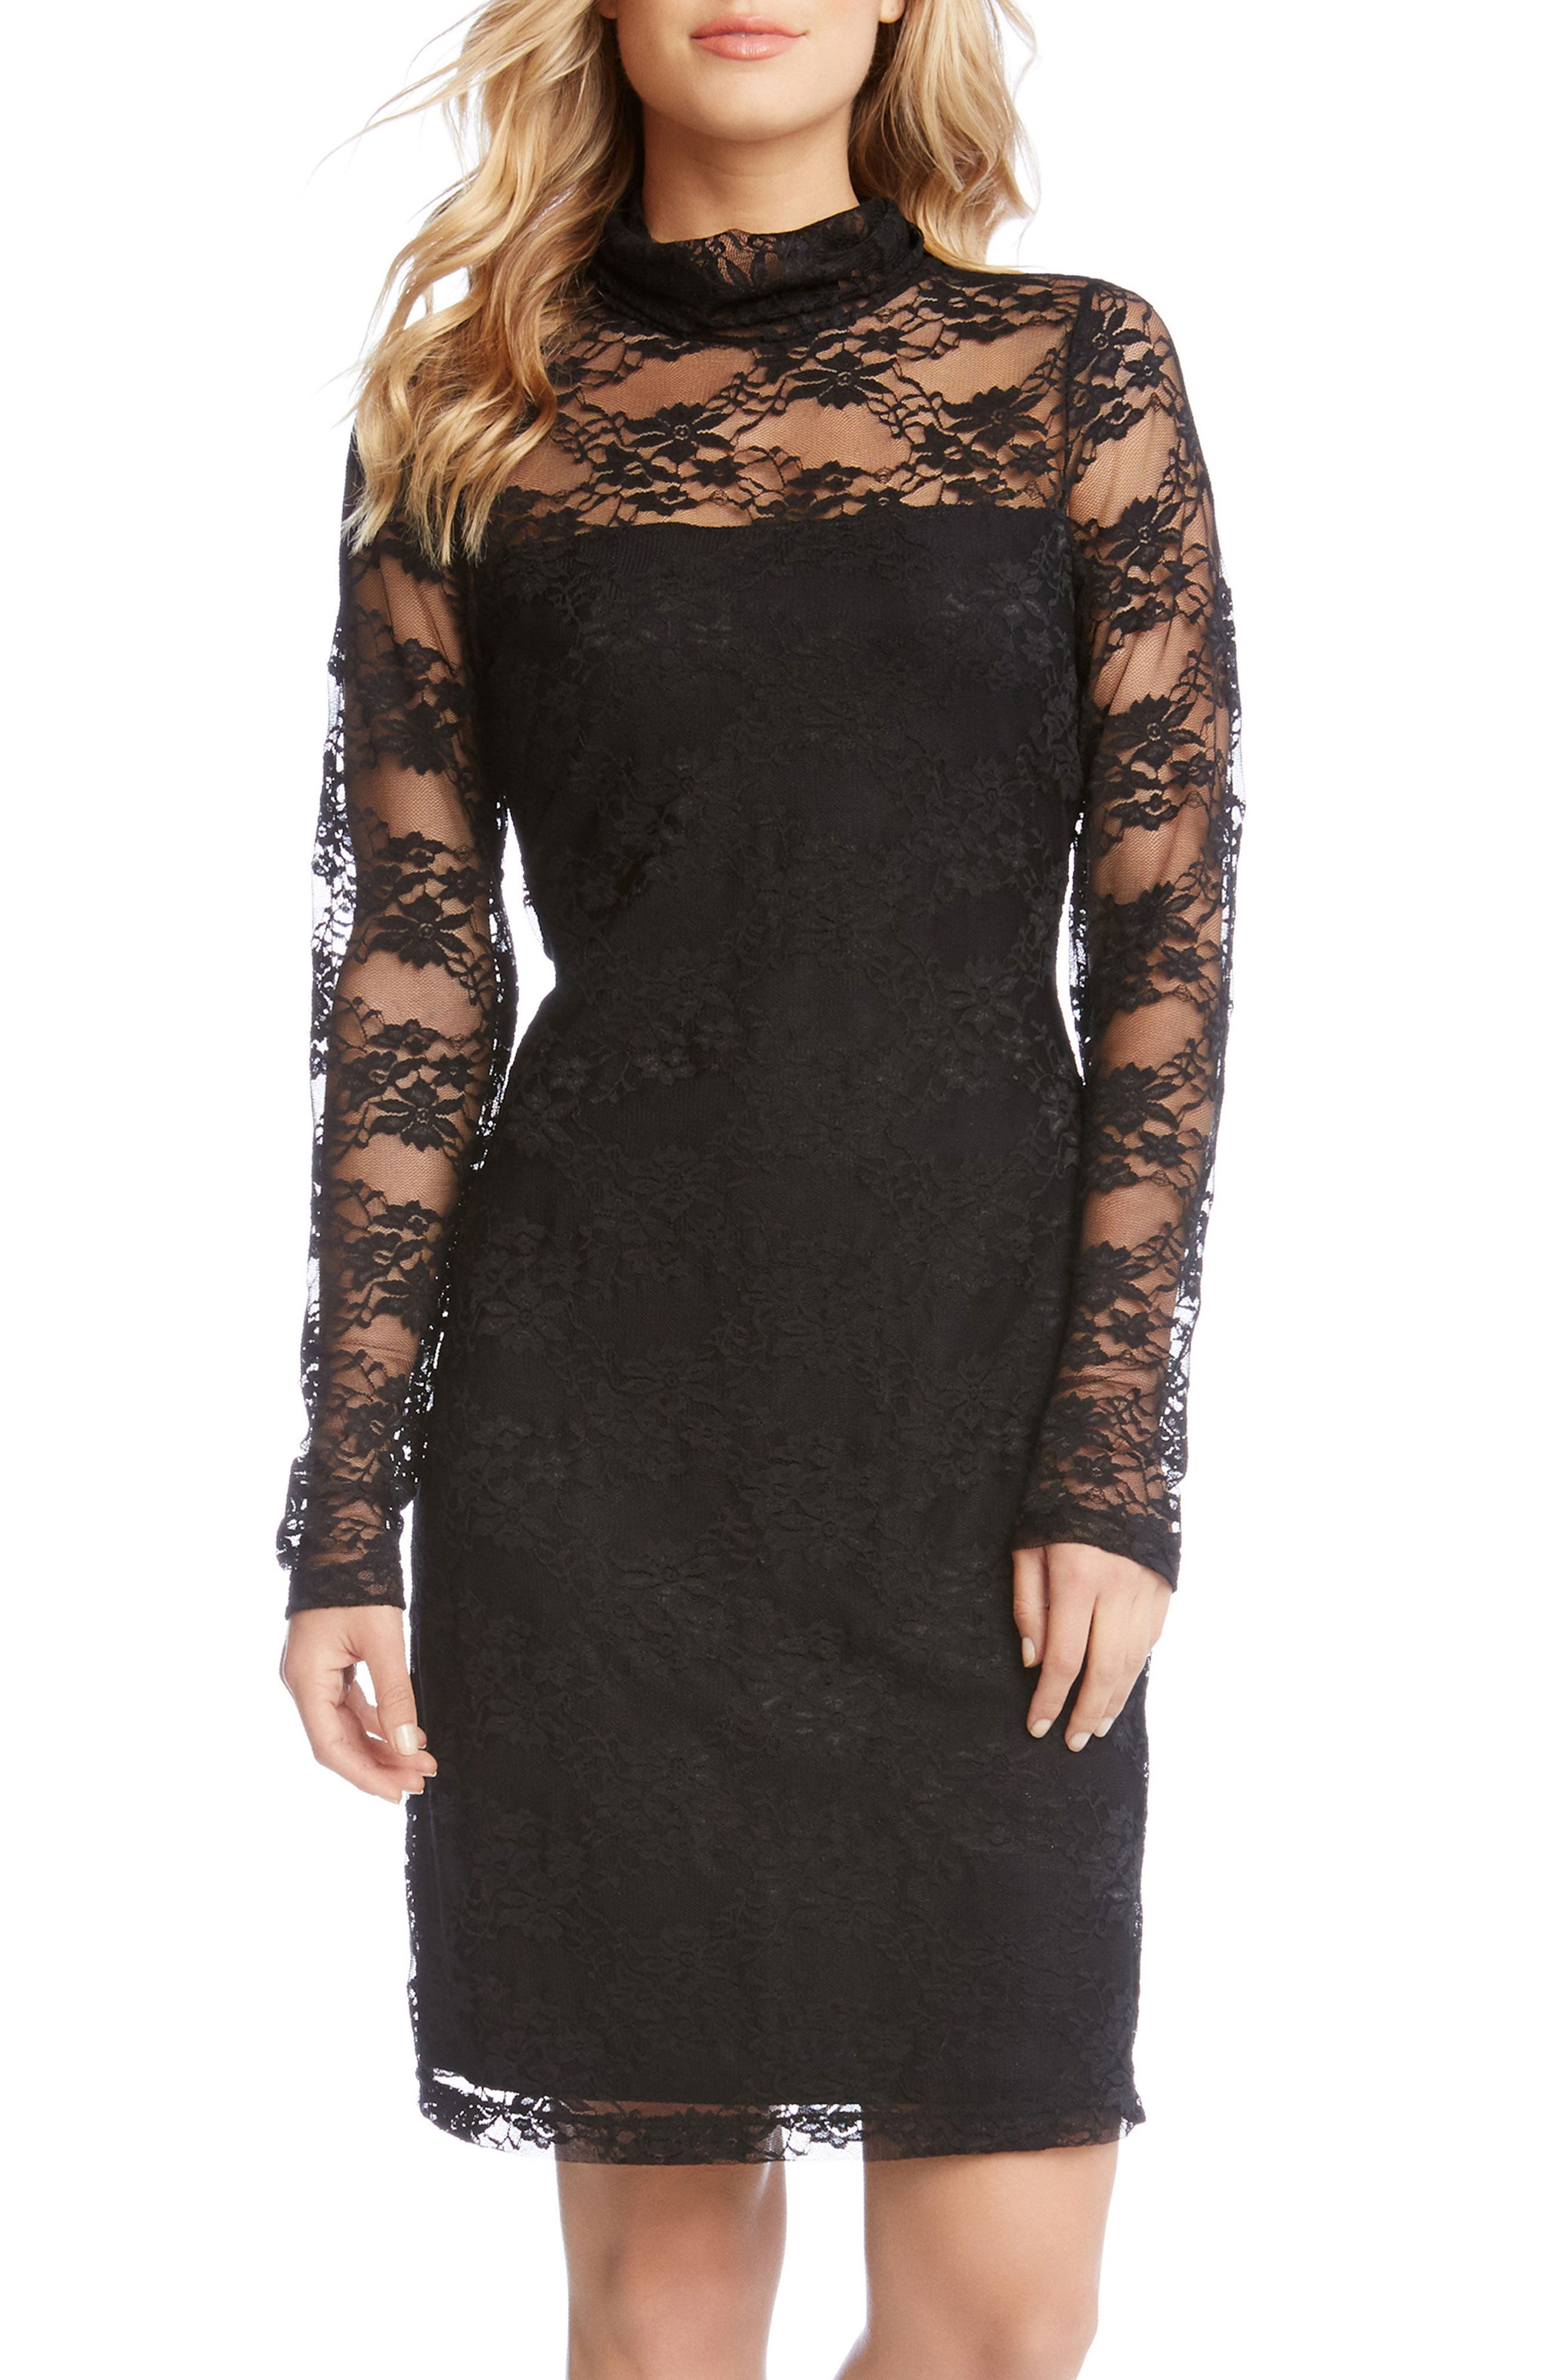 Alternate Image 1 Selected - Karen Kane Turtleneck Lace Sheath Dress